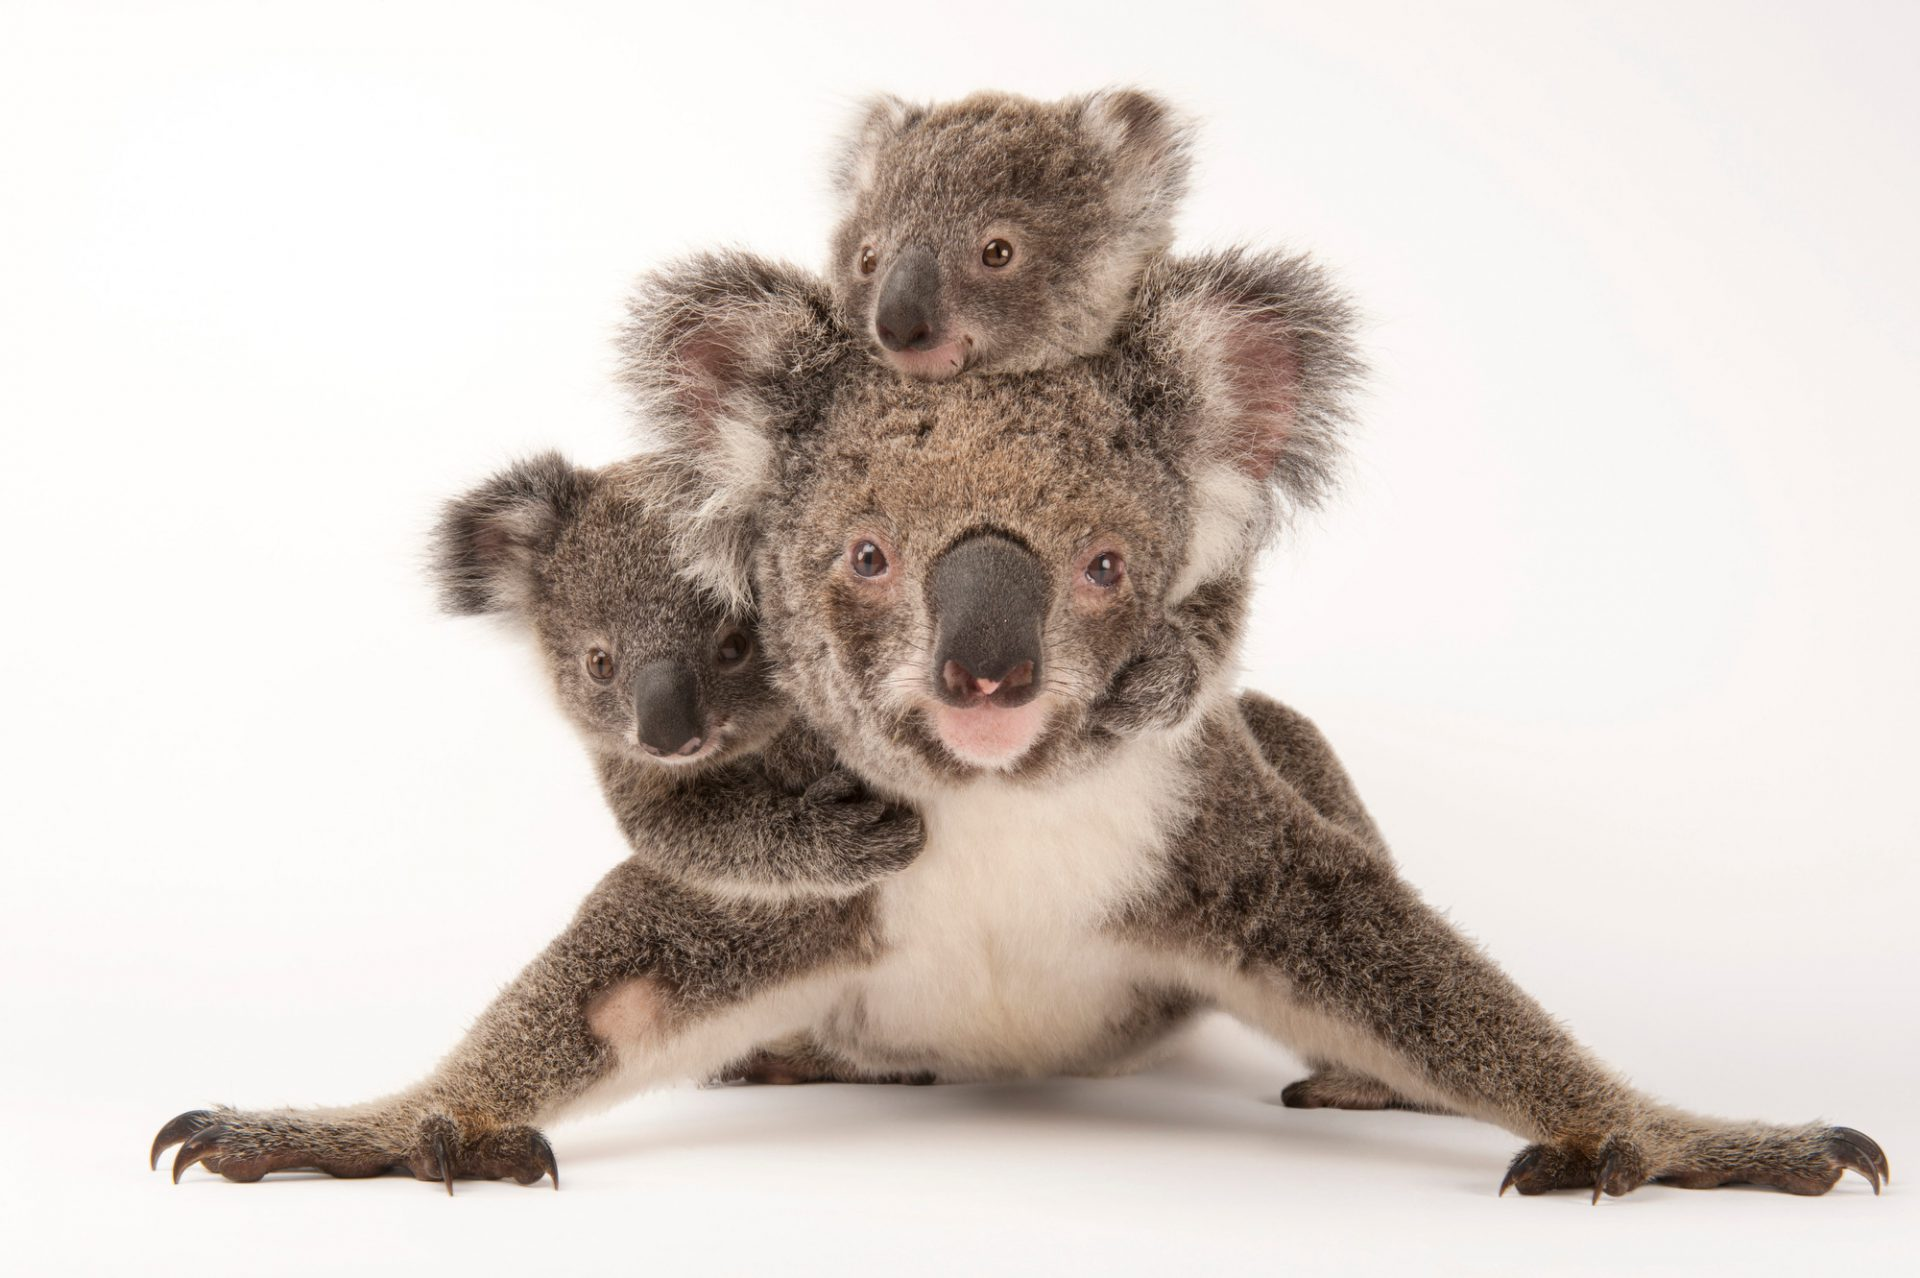 Photo: Augustine, a mother koala with her young ones Gus and Rupert (one is adopted and one is her own offspring) at the Australia Zoo Wildlife Hospital.